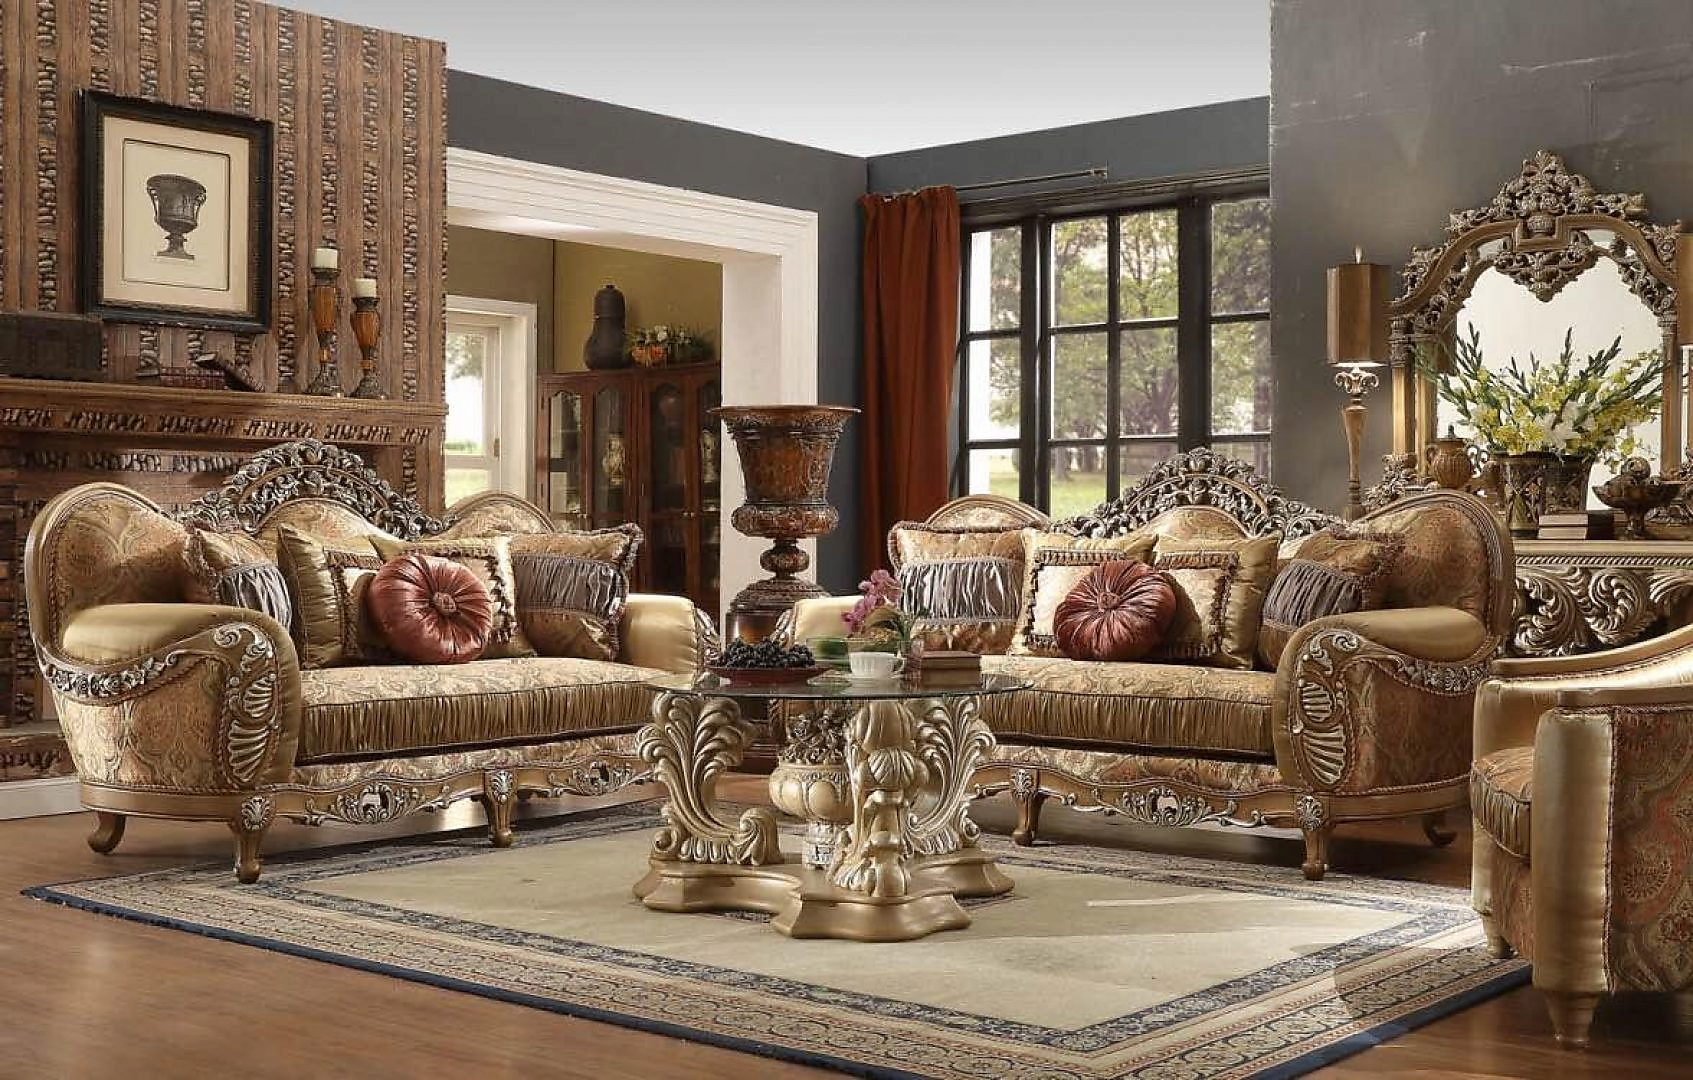 Traditional HD-622 Sofa Loveseat Chair Coffee Table End Table 5Pcs by Homey Design